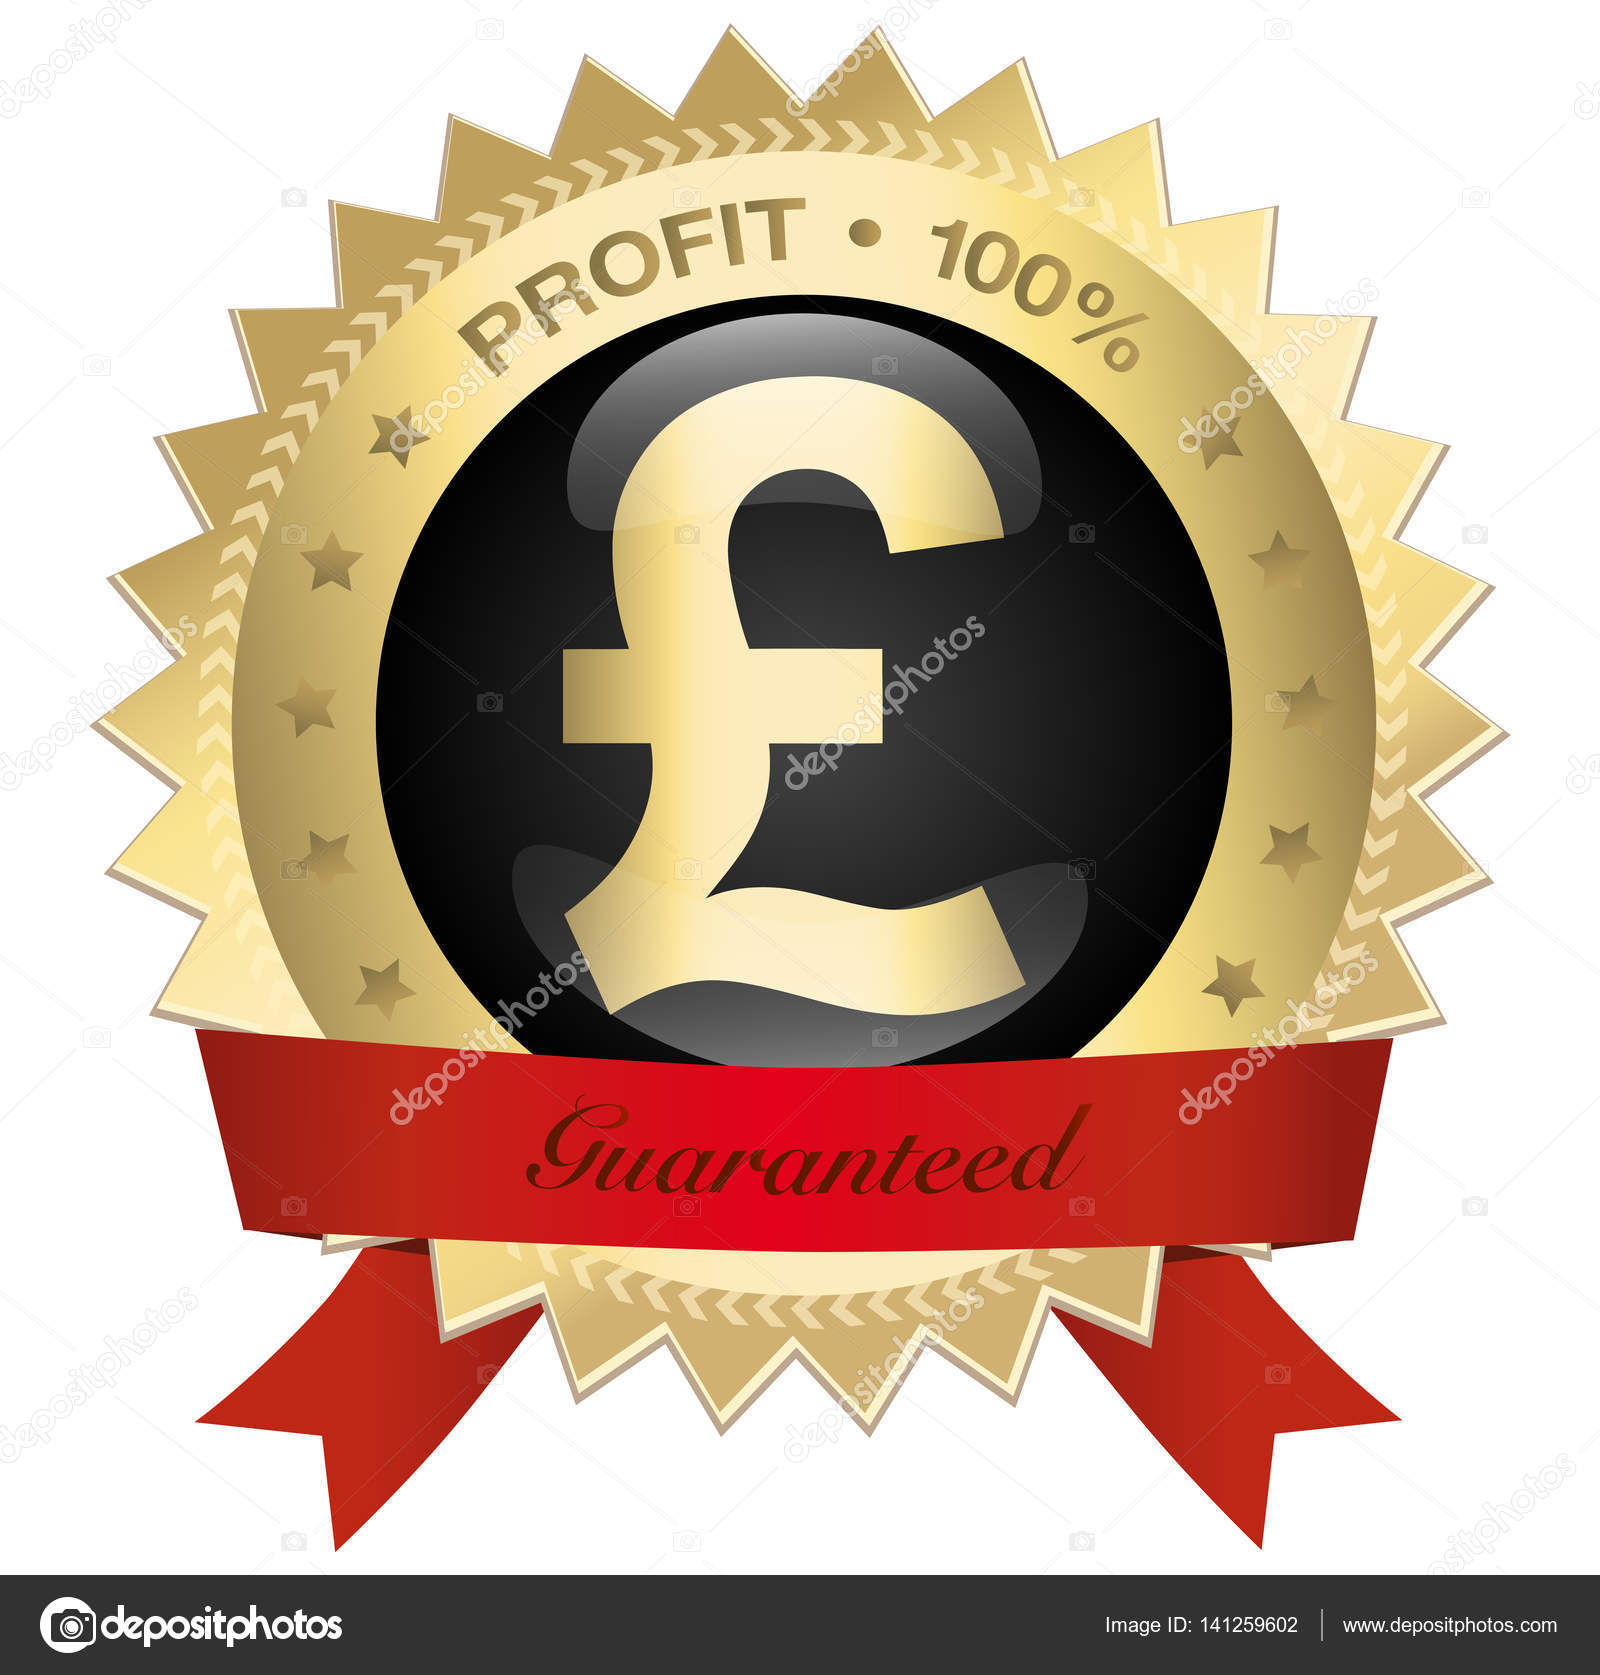 Profit 100 seal or icon with pound sterling symbol stock vector profit 100 seal or icon with pound sterling symbol stock vector buycottarizona Image collections